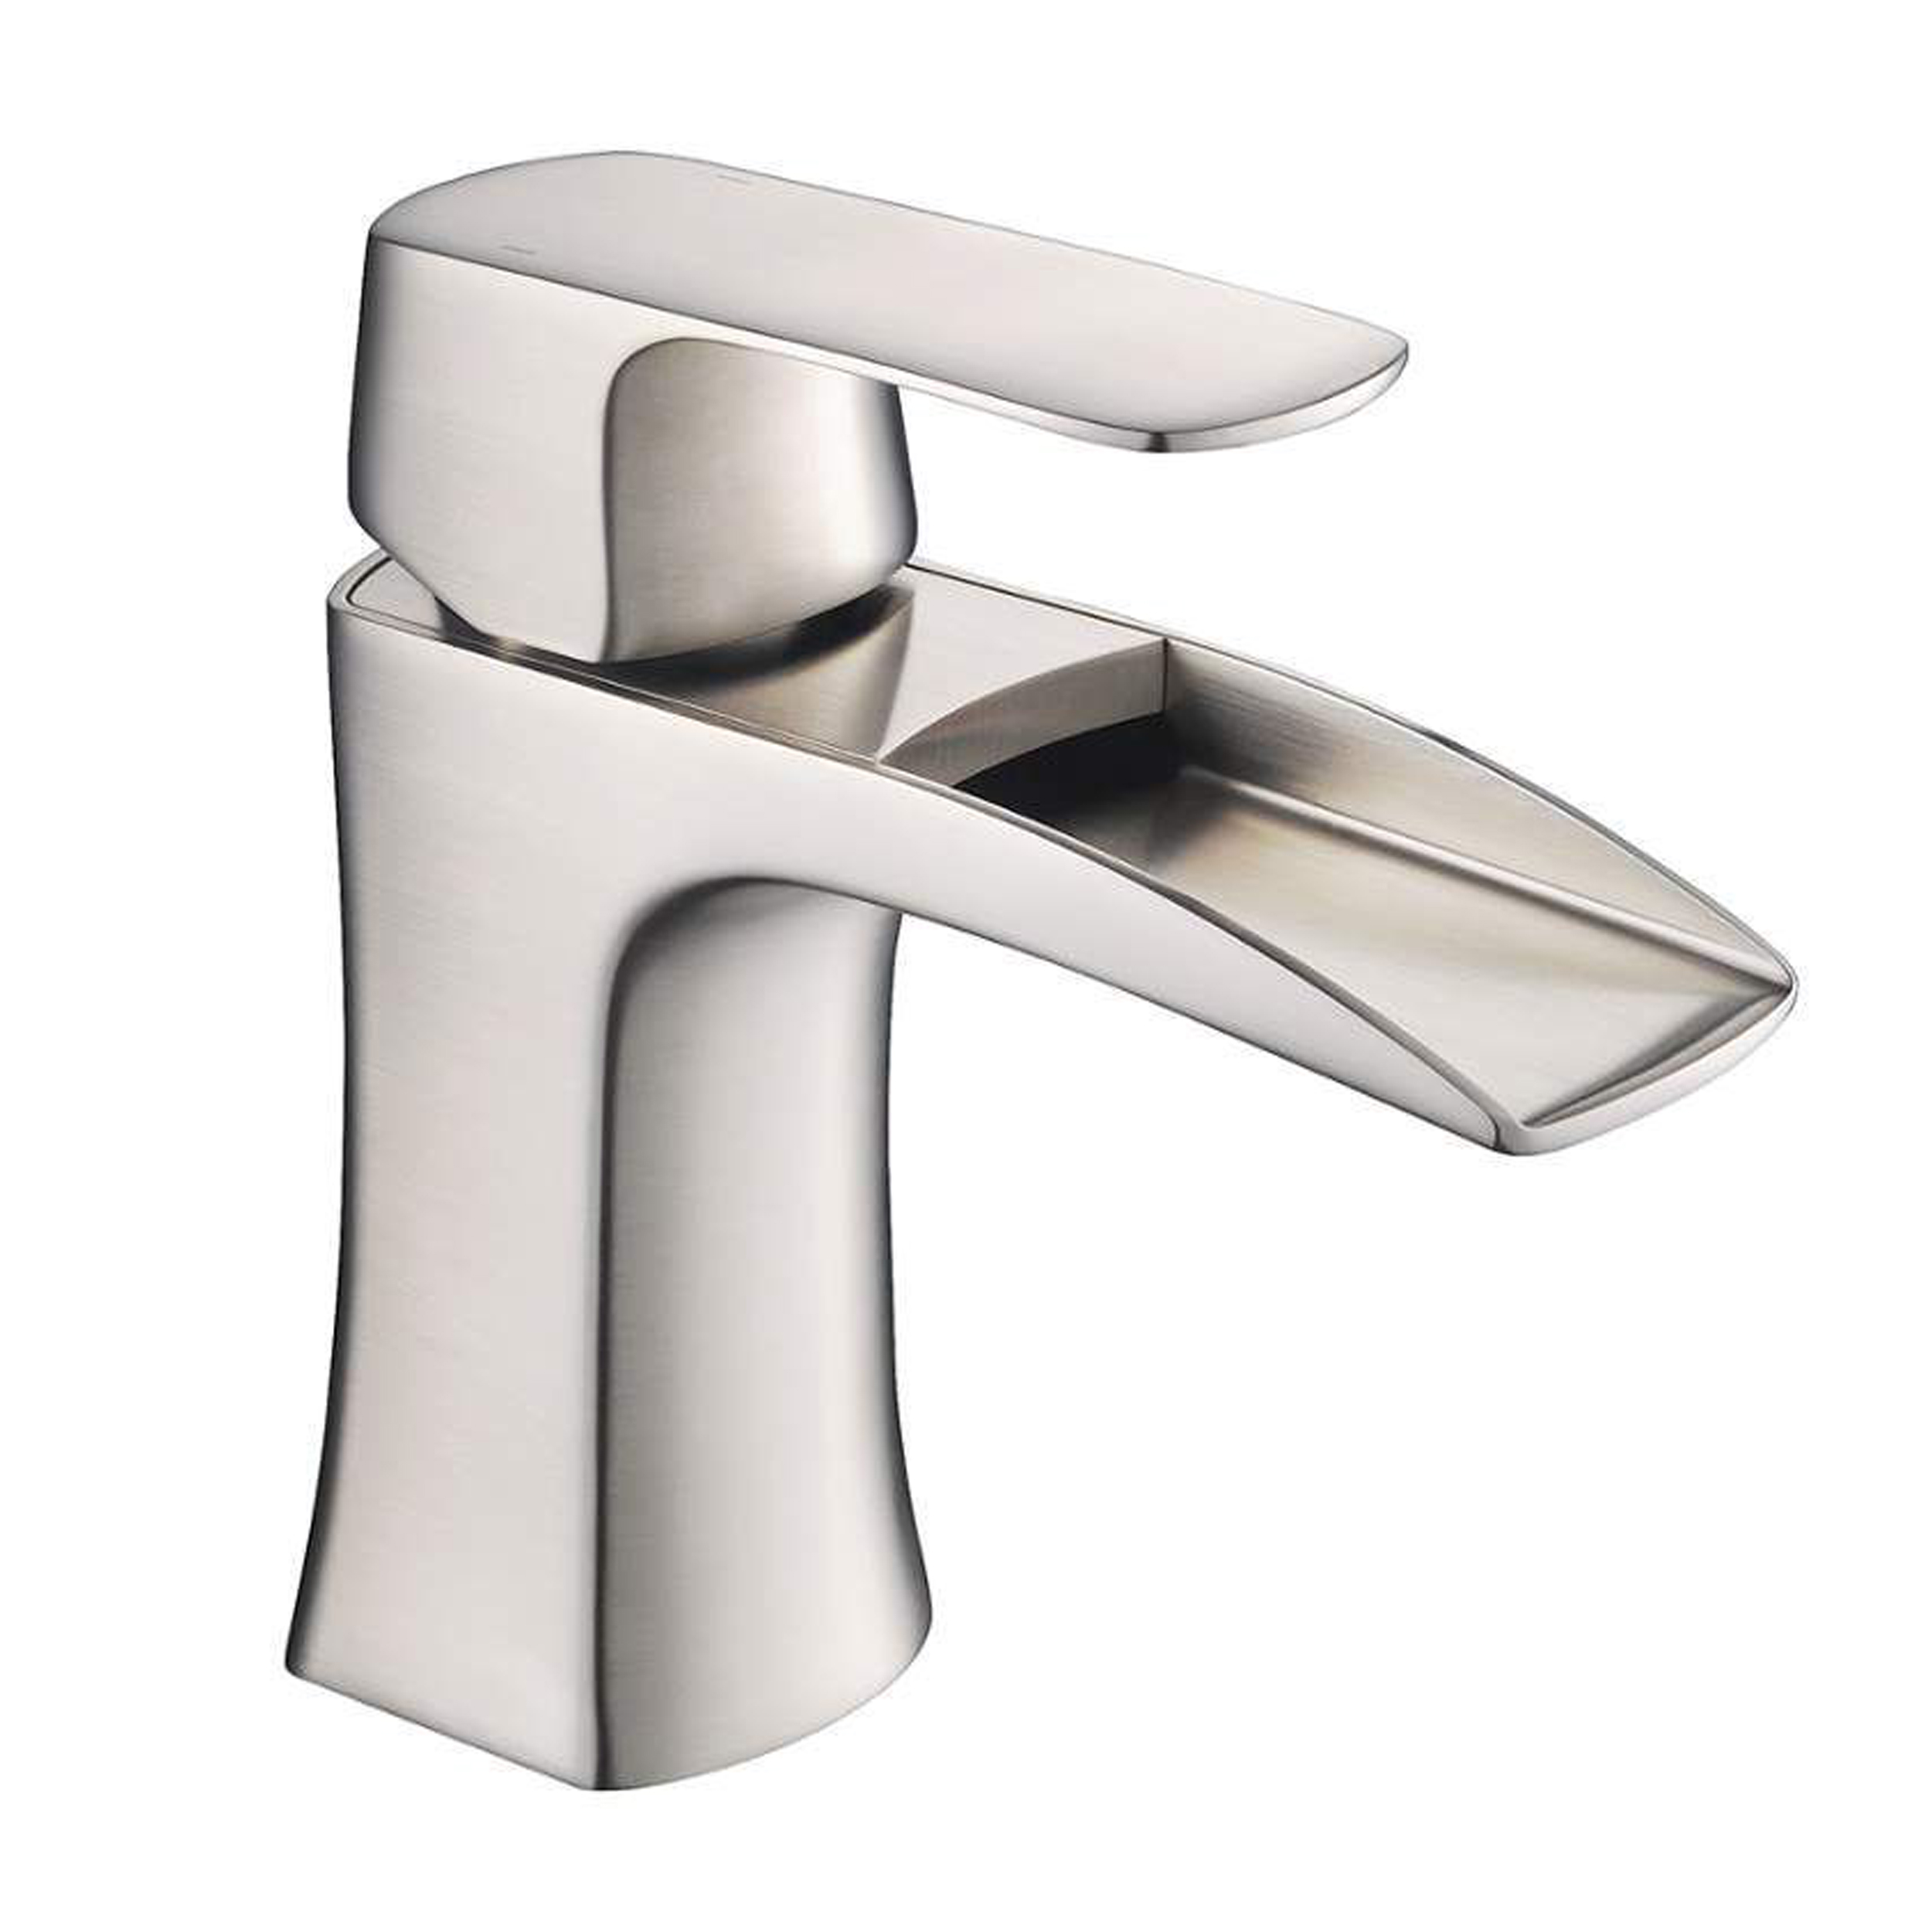 ... One Handle Bathroom Faucet In Brushed Nickel Finish. EVFT450BN_A_Main